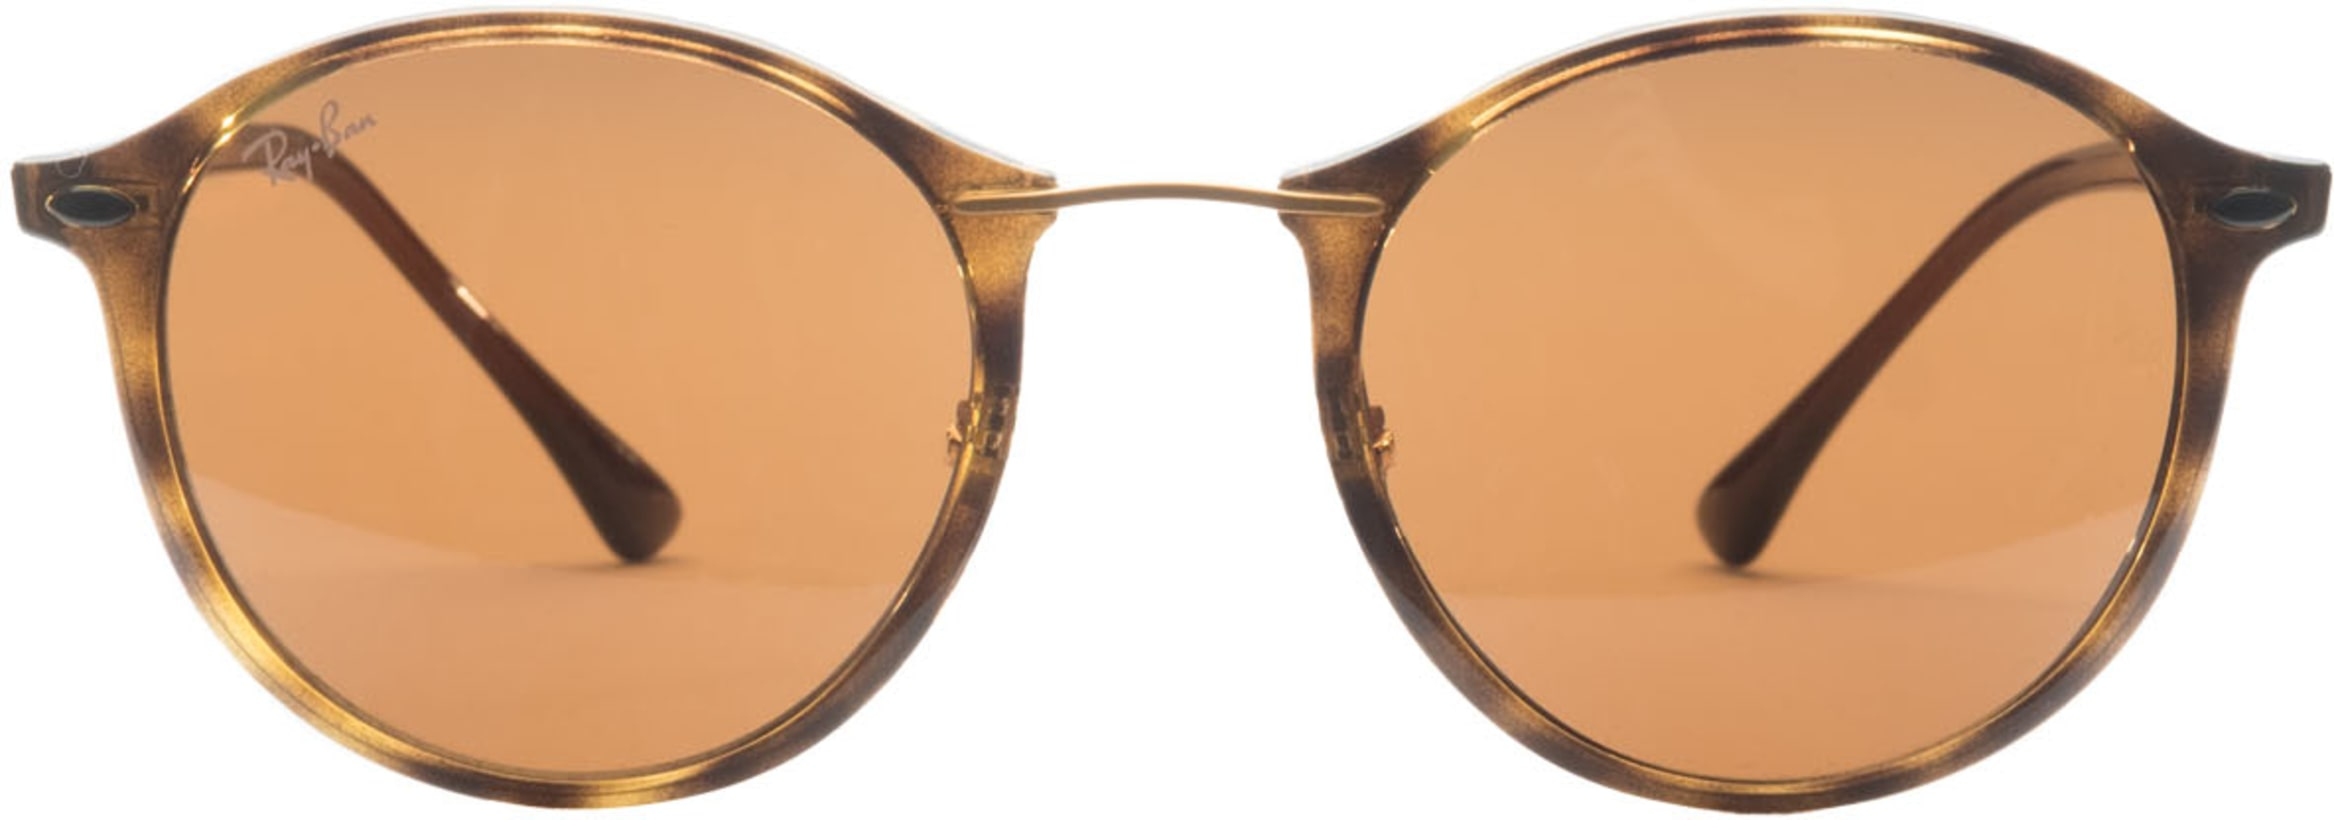 38748d16a Ray-Ban: Round Light Ray Sunglasses - Tortoise/Brown/Brown | influenceu